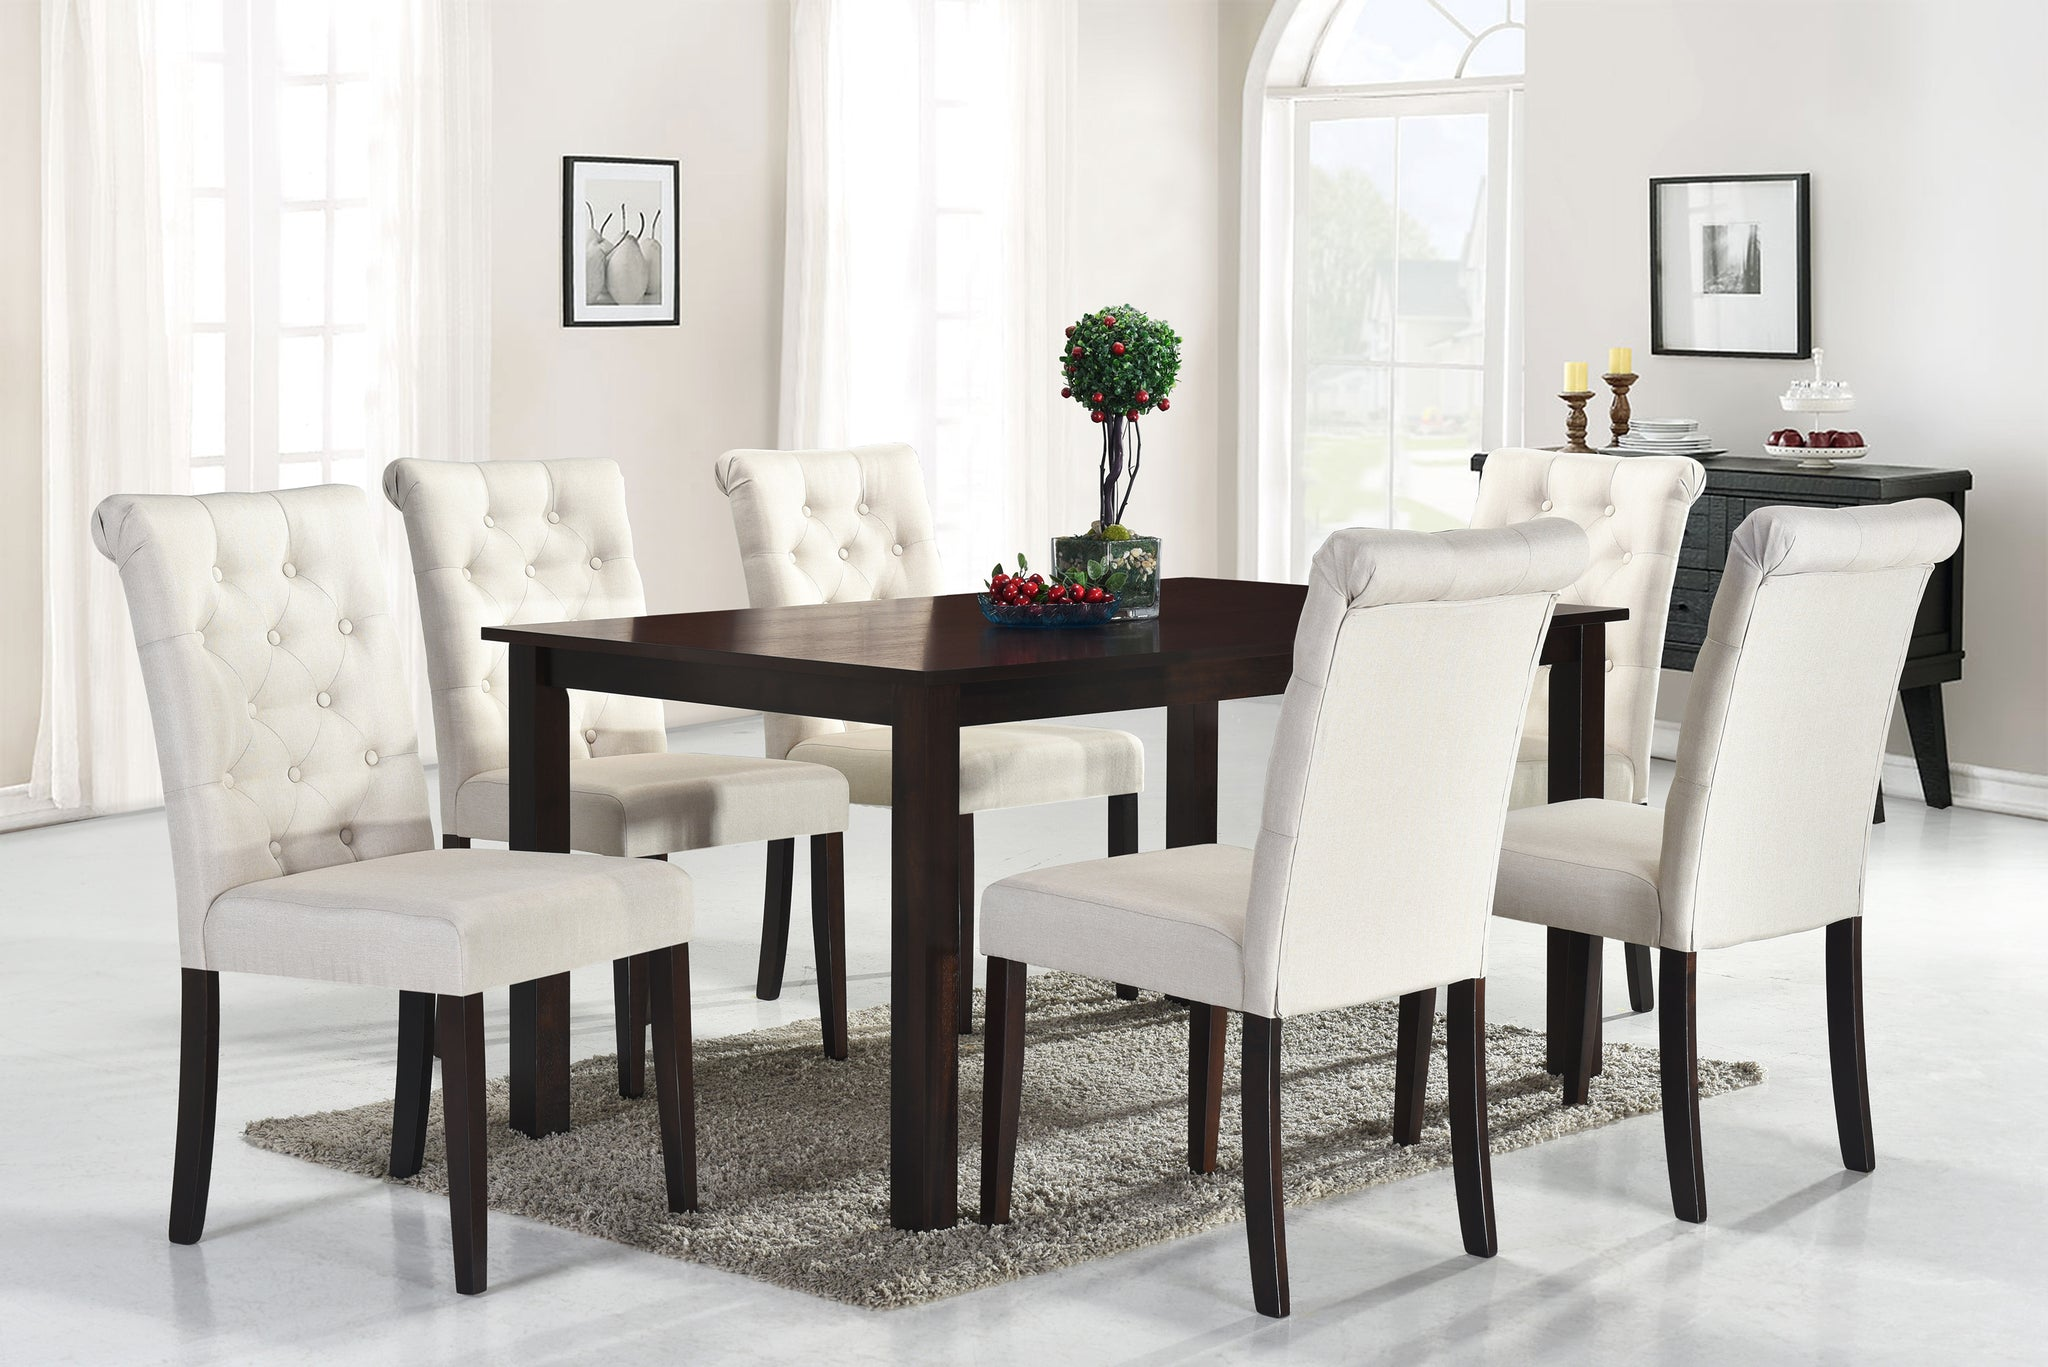 Roxy Beige 7 Pc. Dining Set